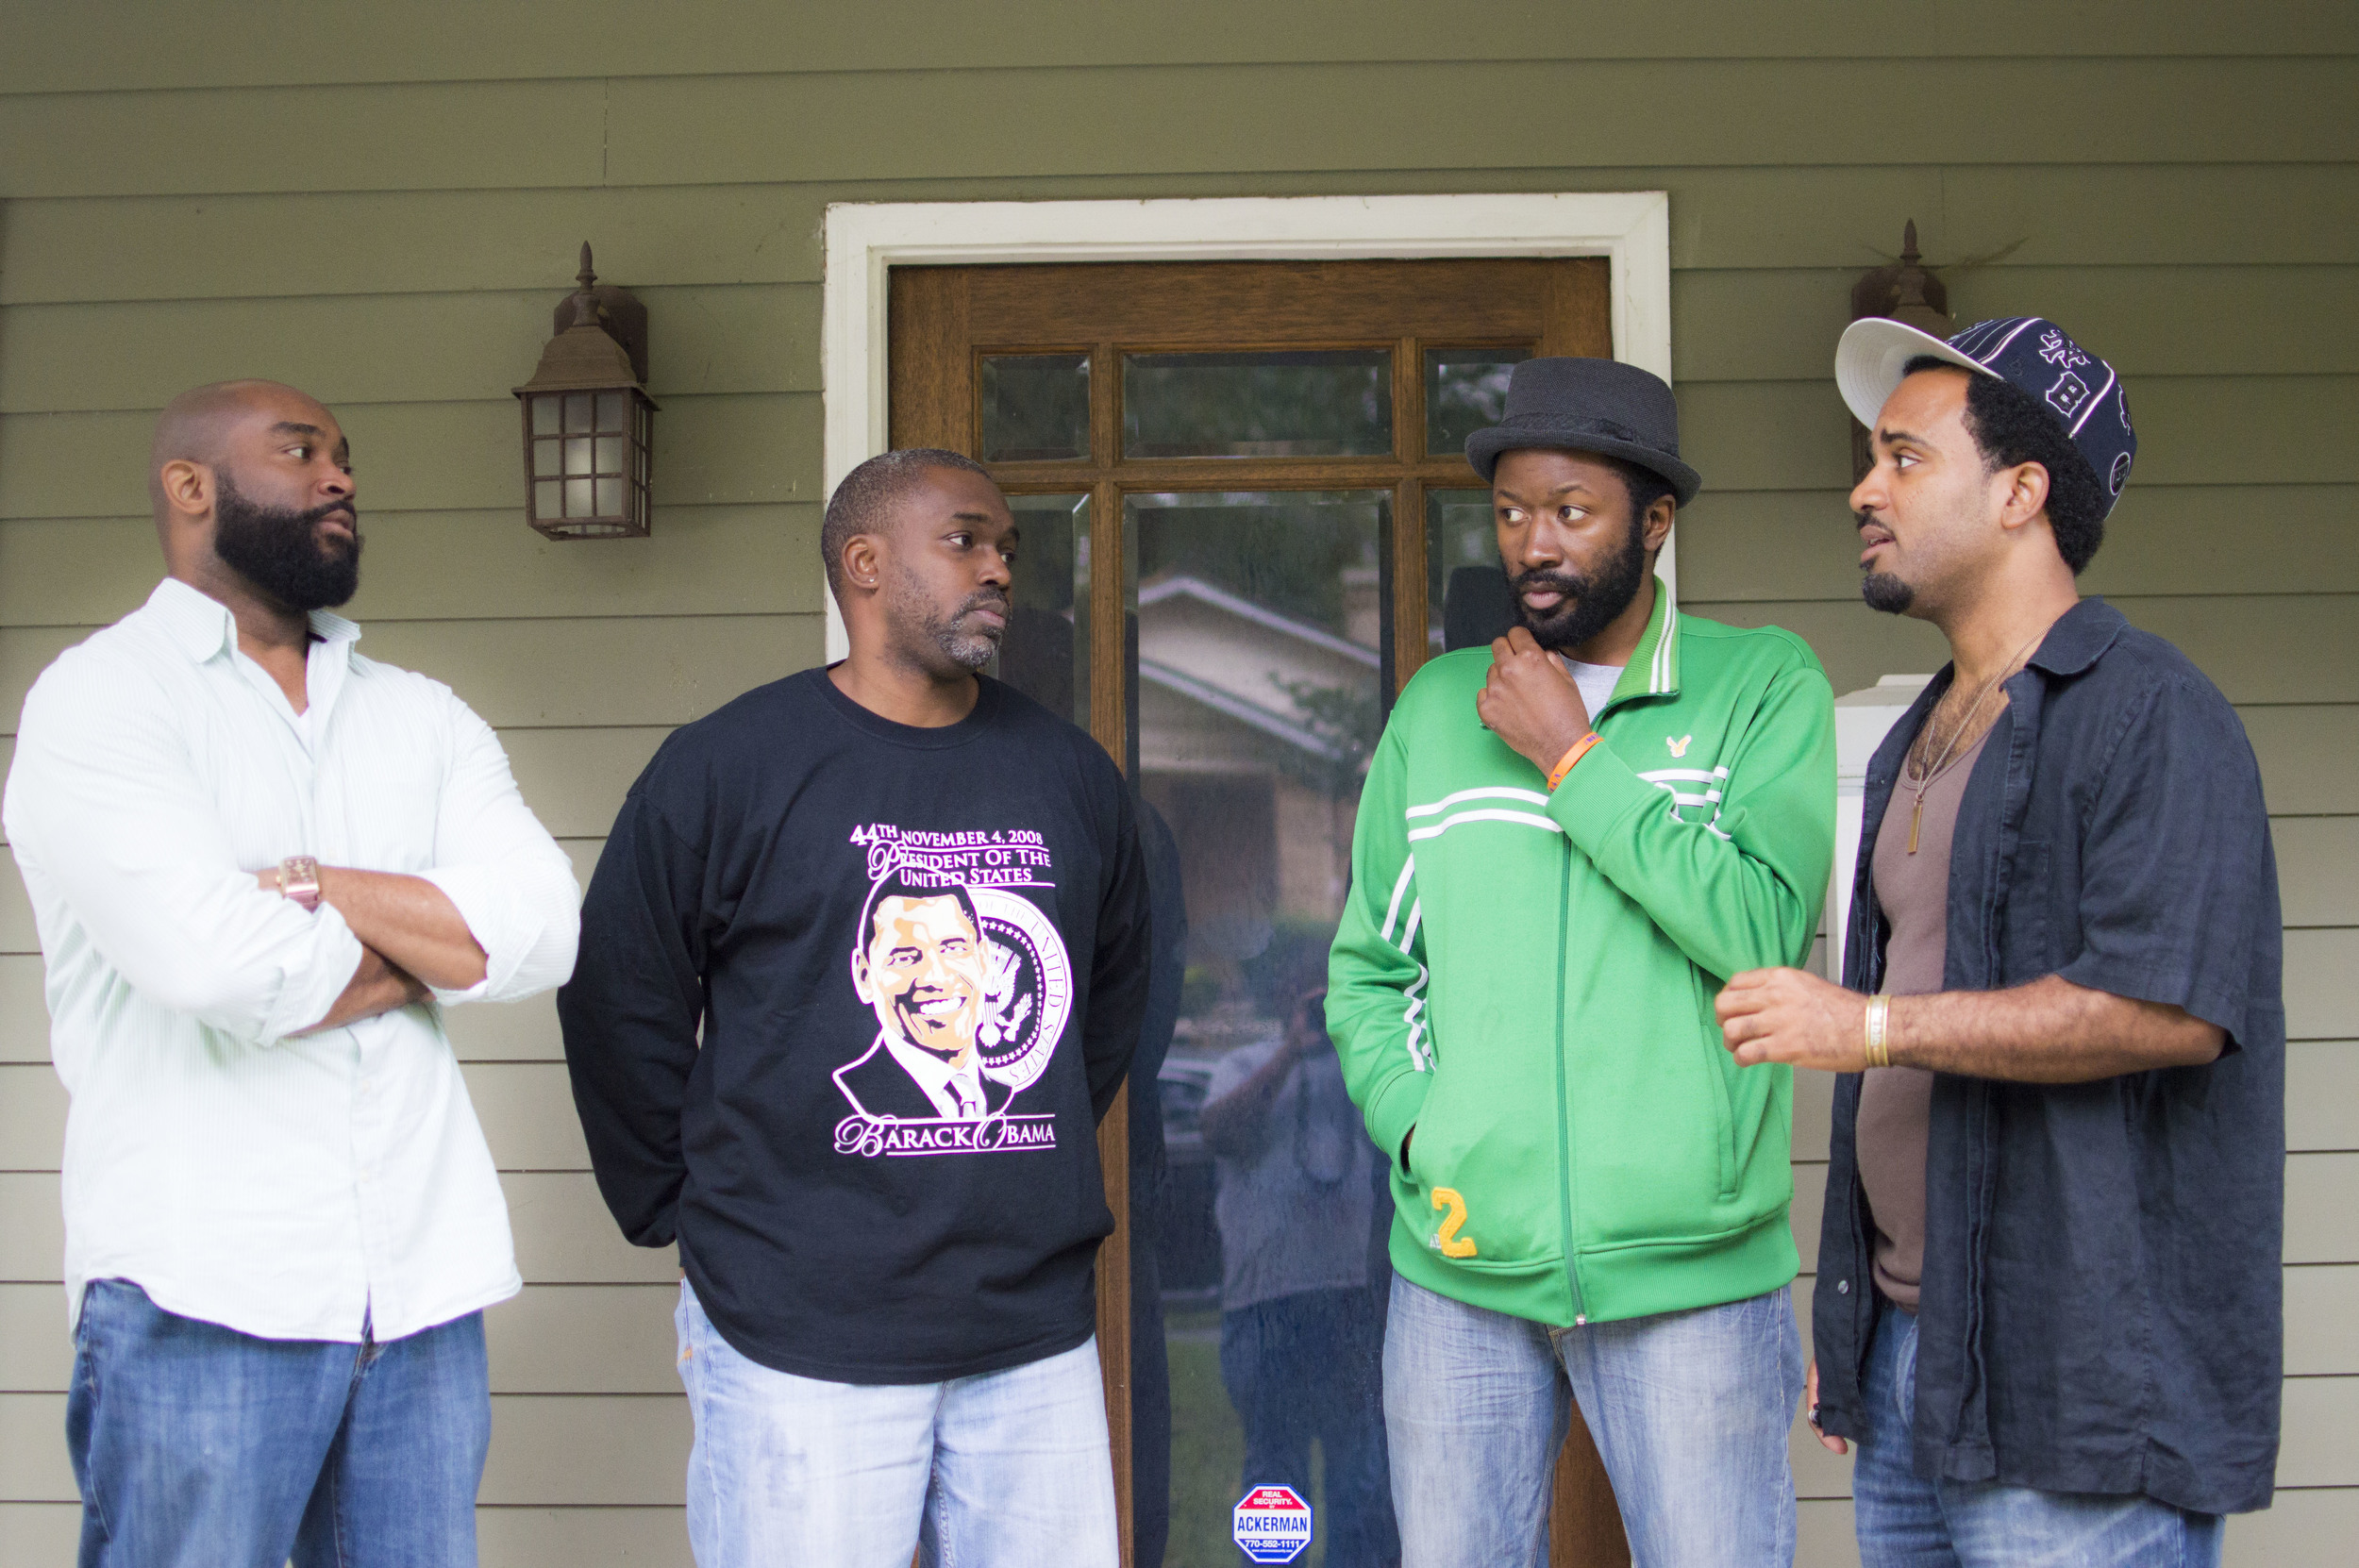 From Left To Right: Carlus Houston (Shane), Kerwin Thompson (Chris), Playwright Paris Crayton III and Anthony Goolsby (Tyriq) (Image by Jay Ray)